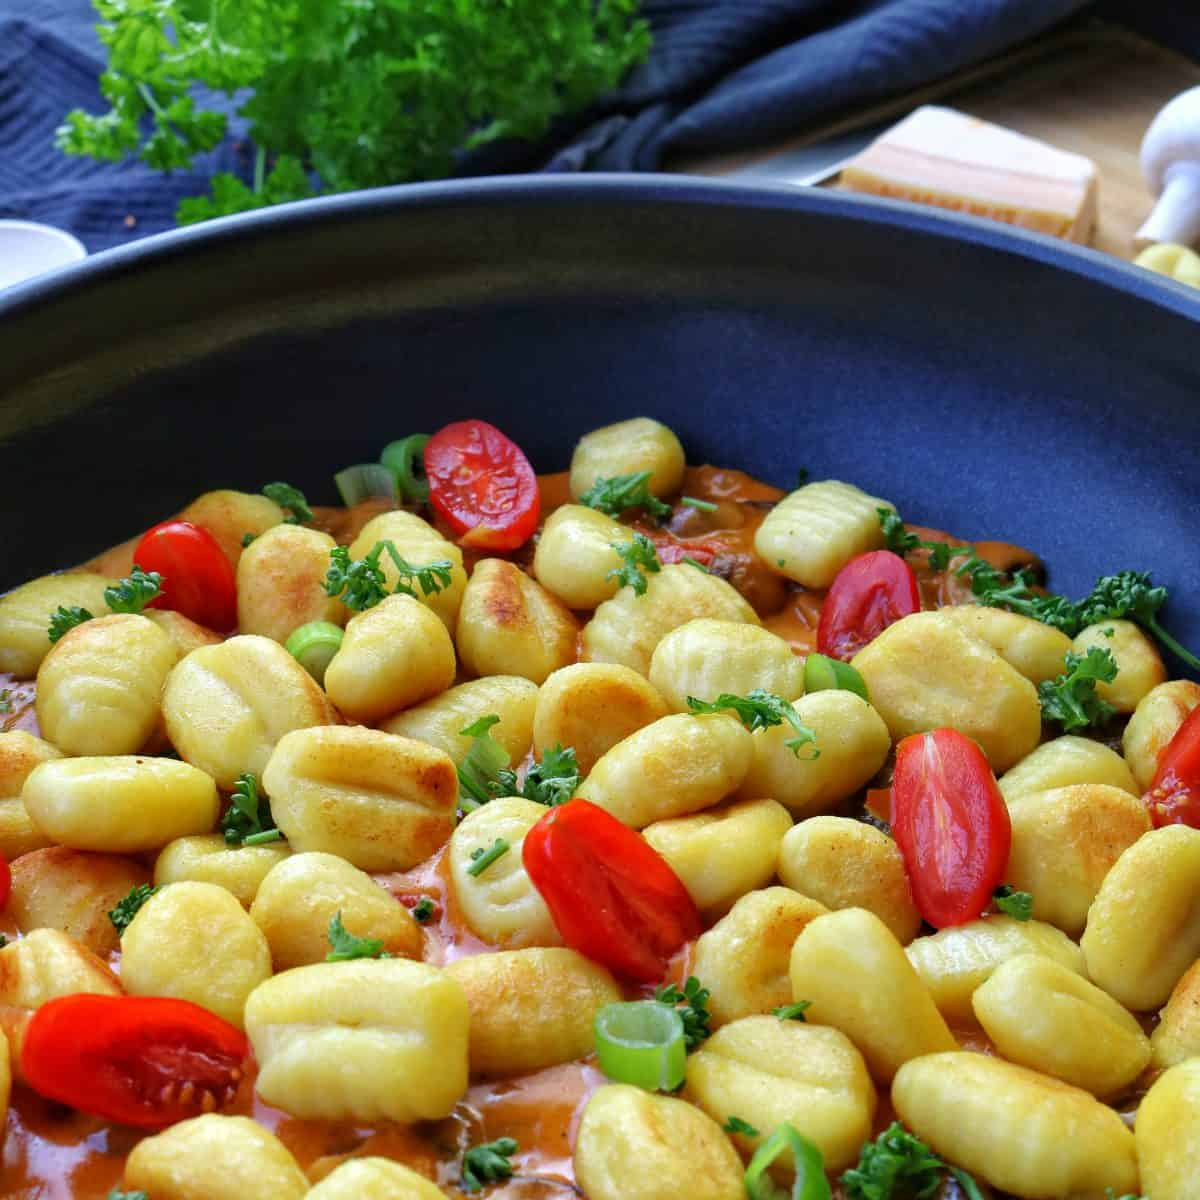 A frying pan with Gnocchi and tomatoes in a mushroom cream sauce. Behind vegetables as decoration.